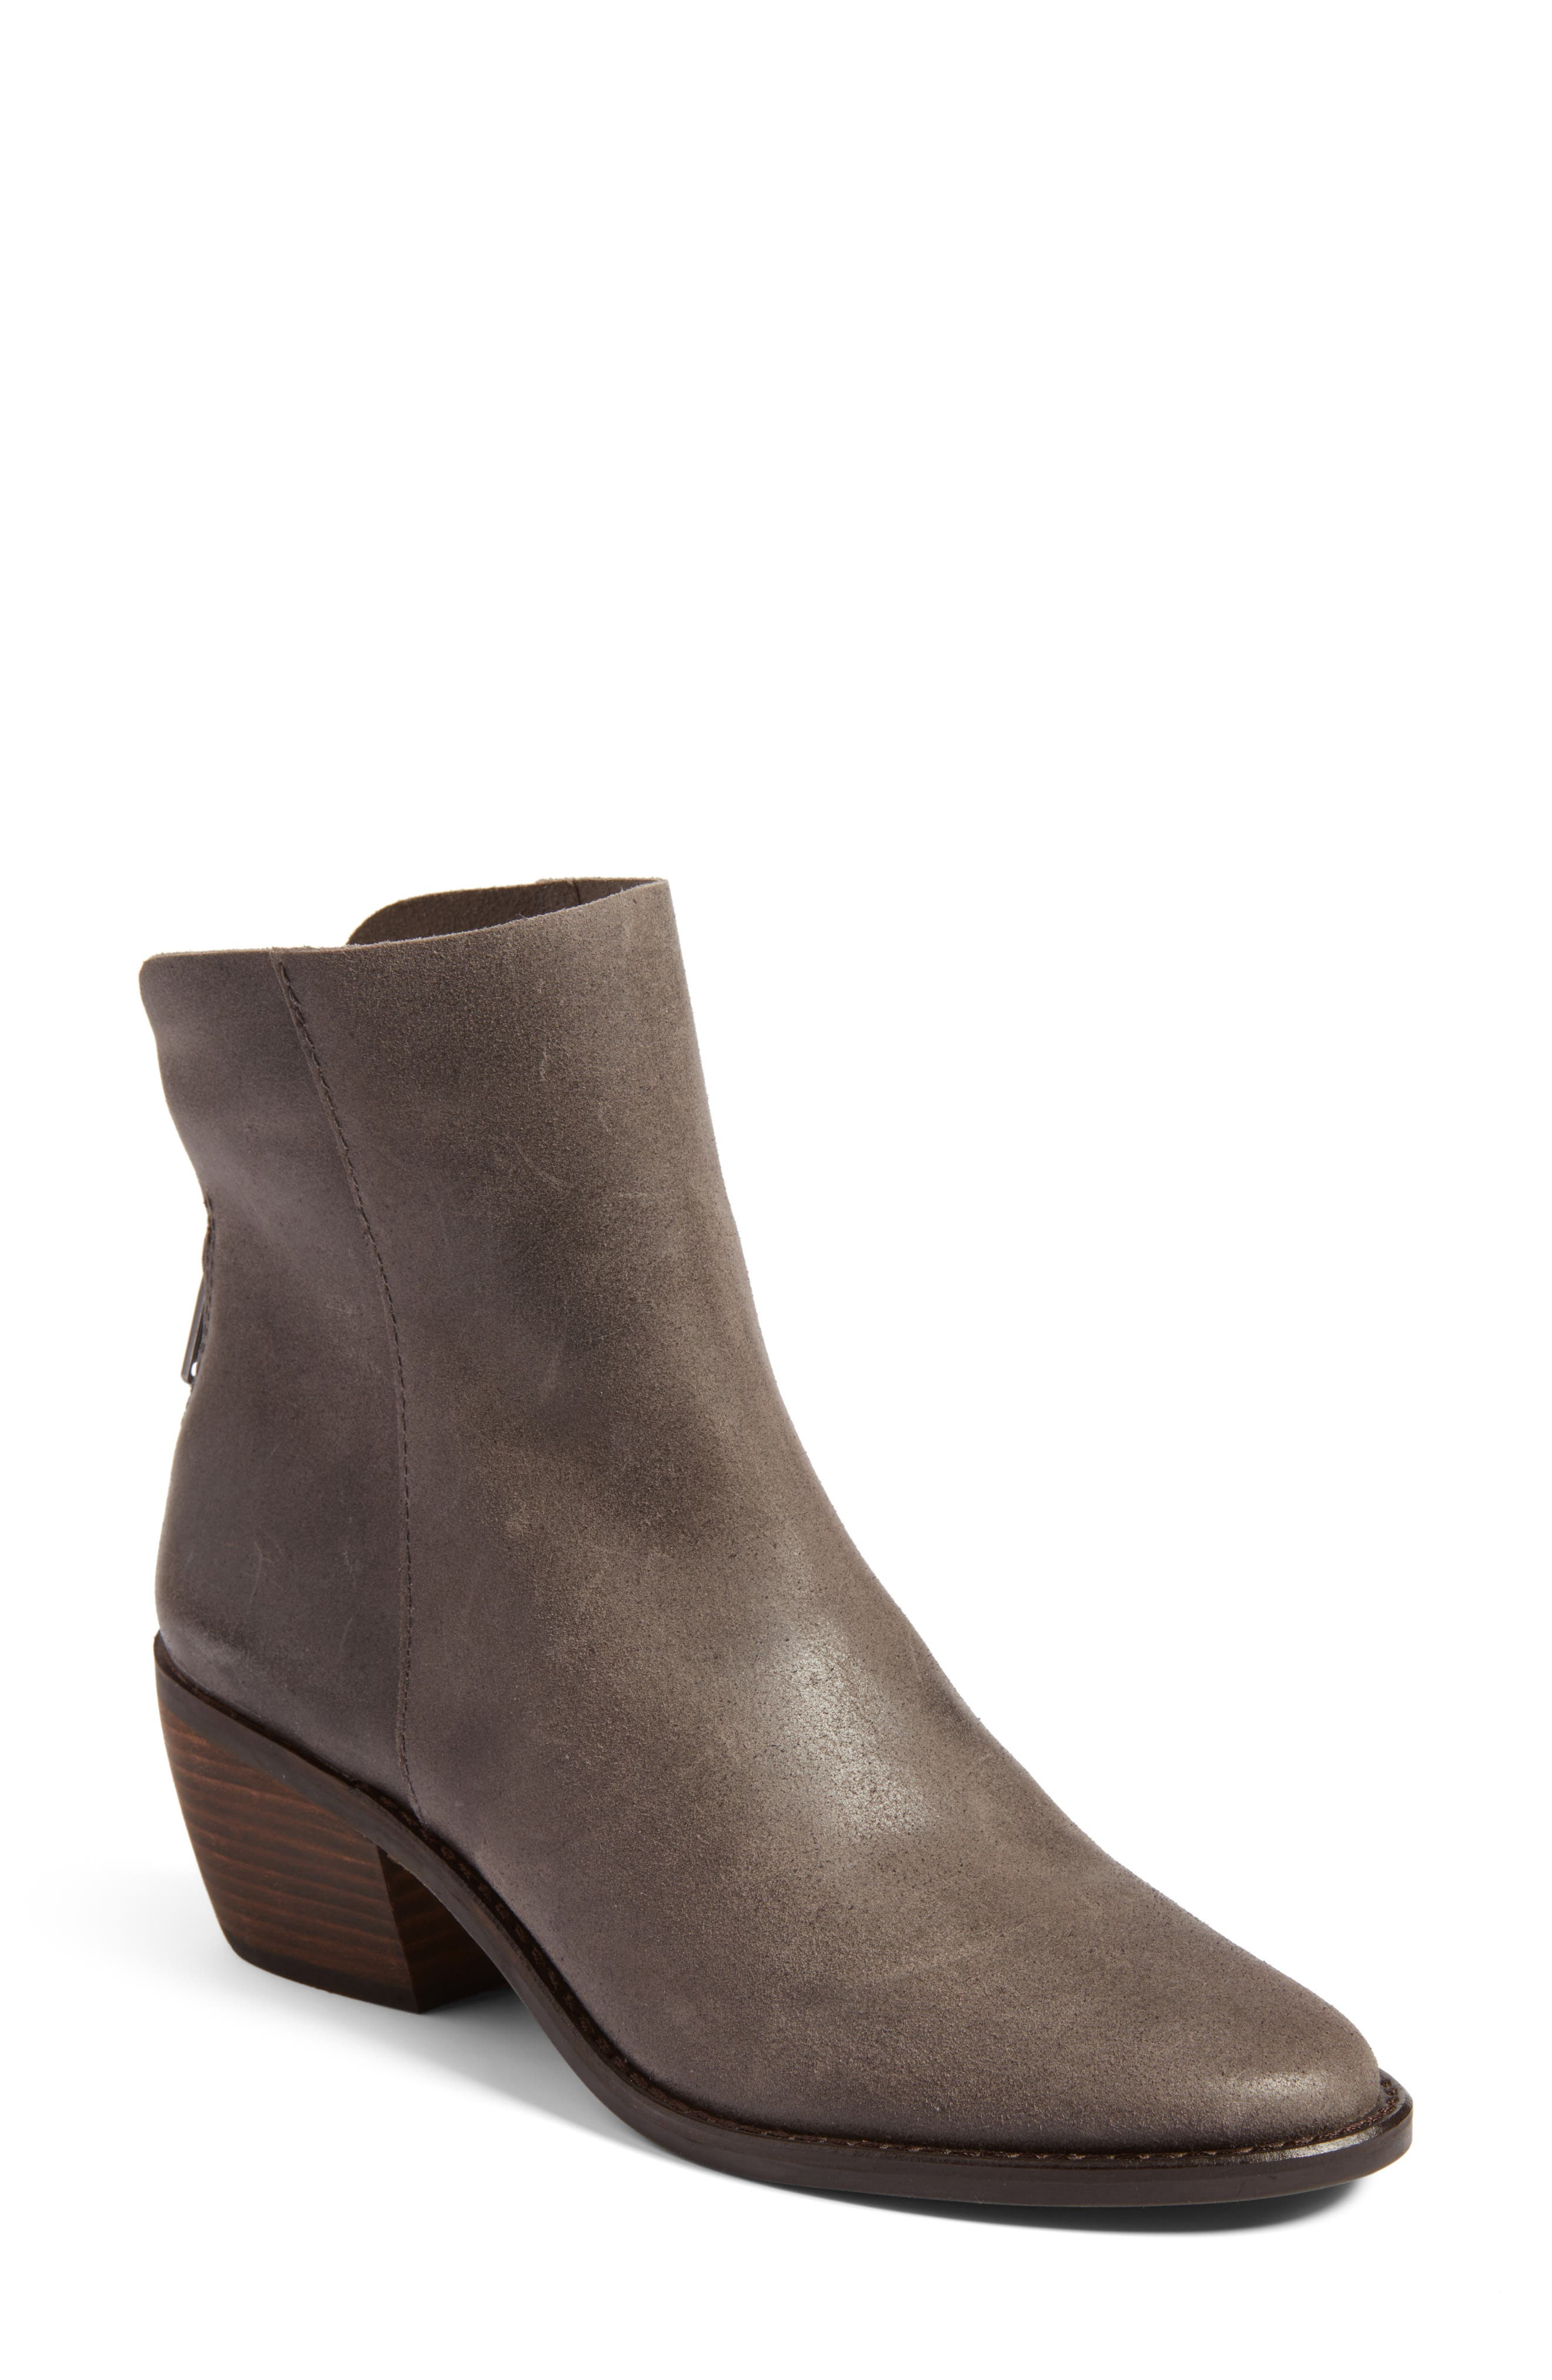 Alternate Image 1 Selected - Lucky Brand Kaiya Pointy Toe Bootie (Women)